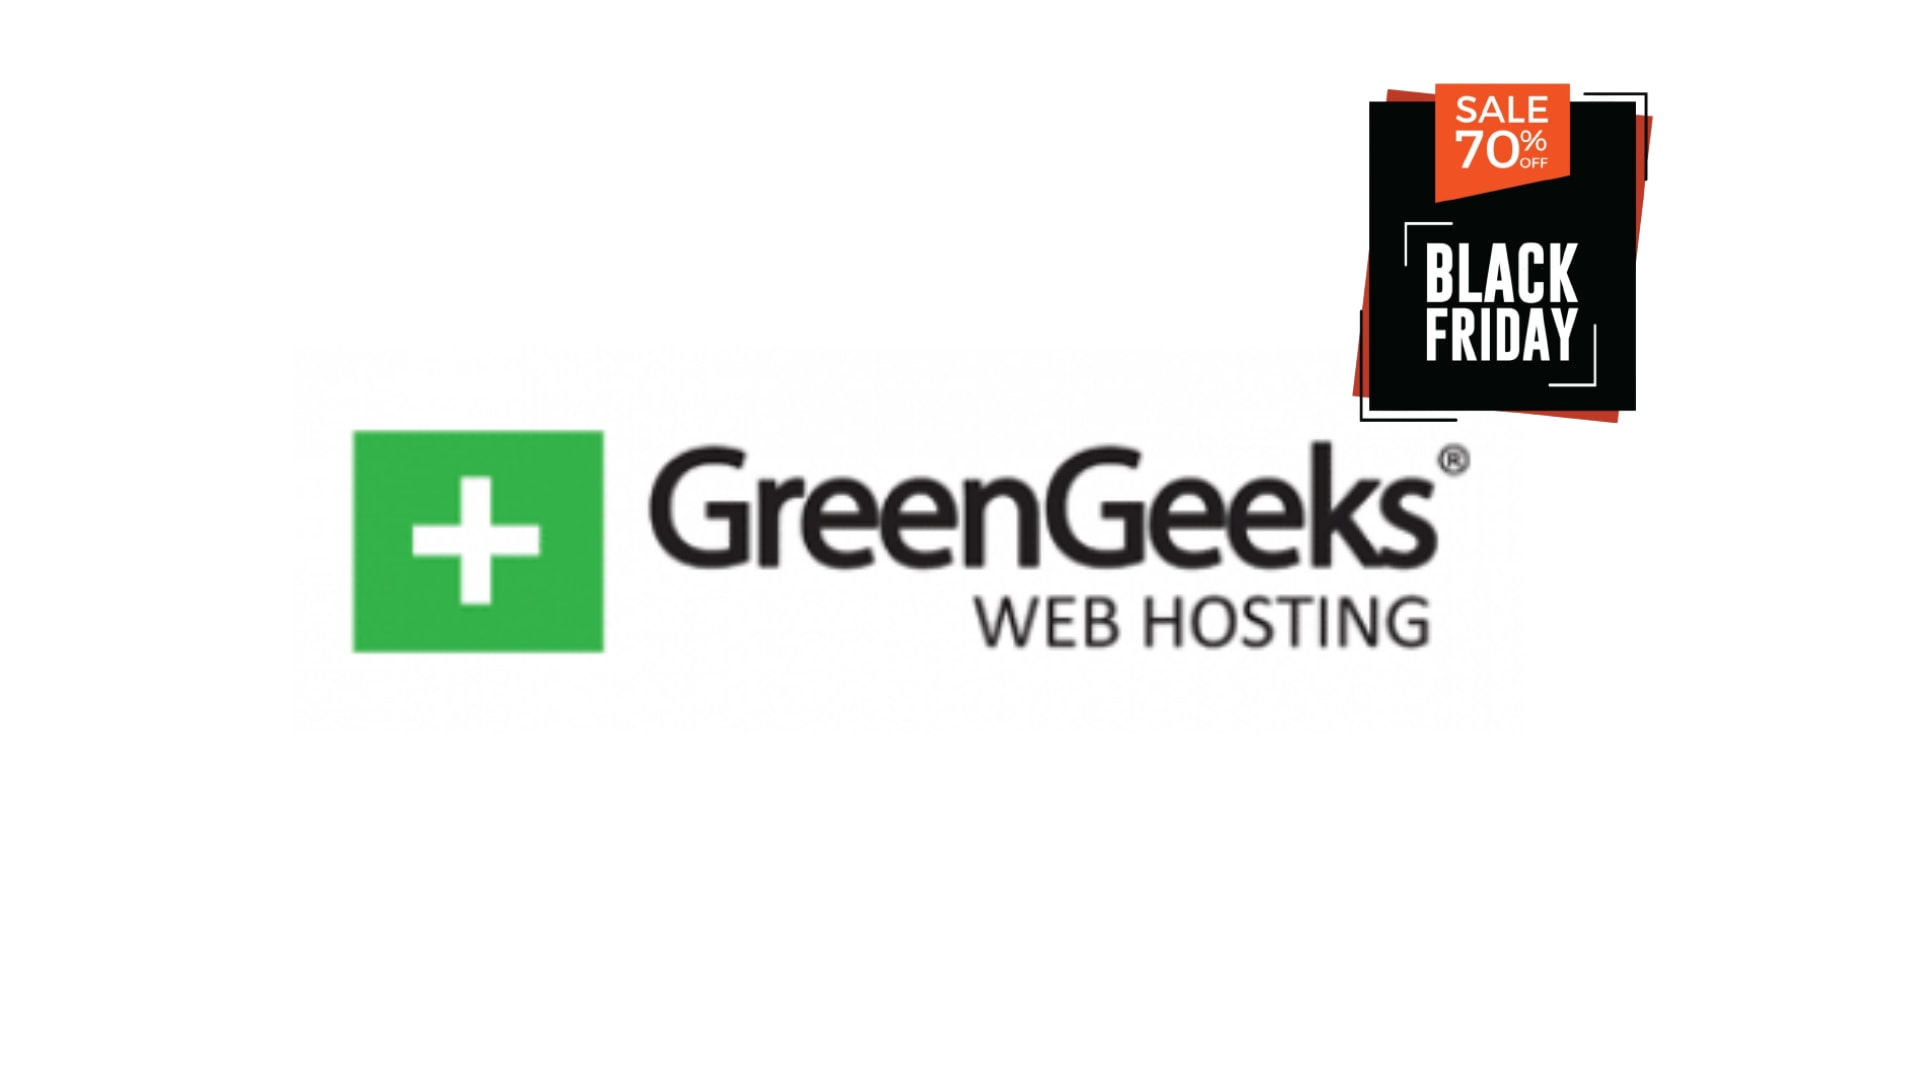 GreenGeaks black Friday sale - GreenGeeks Black Friday Sale 2020 Flat 75% off [Live Now]